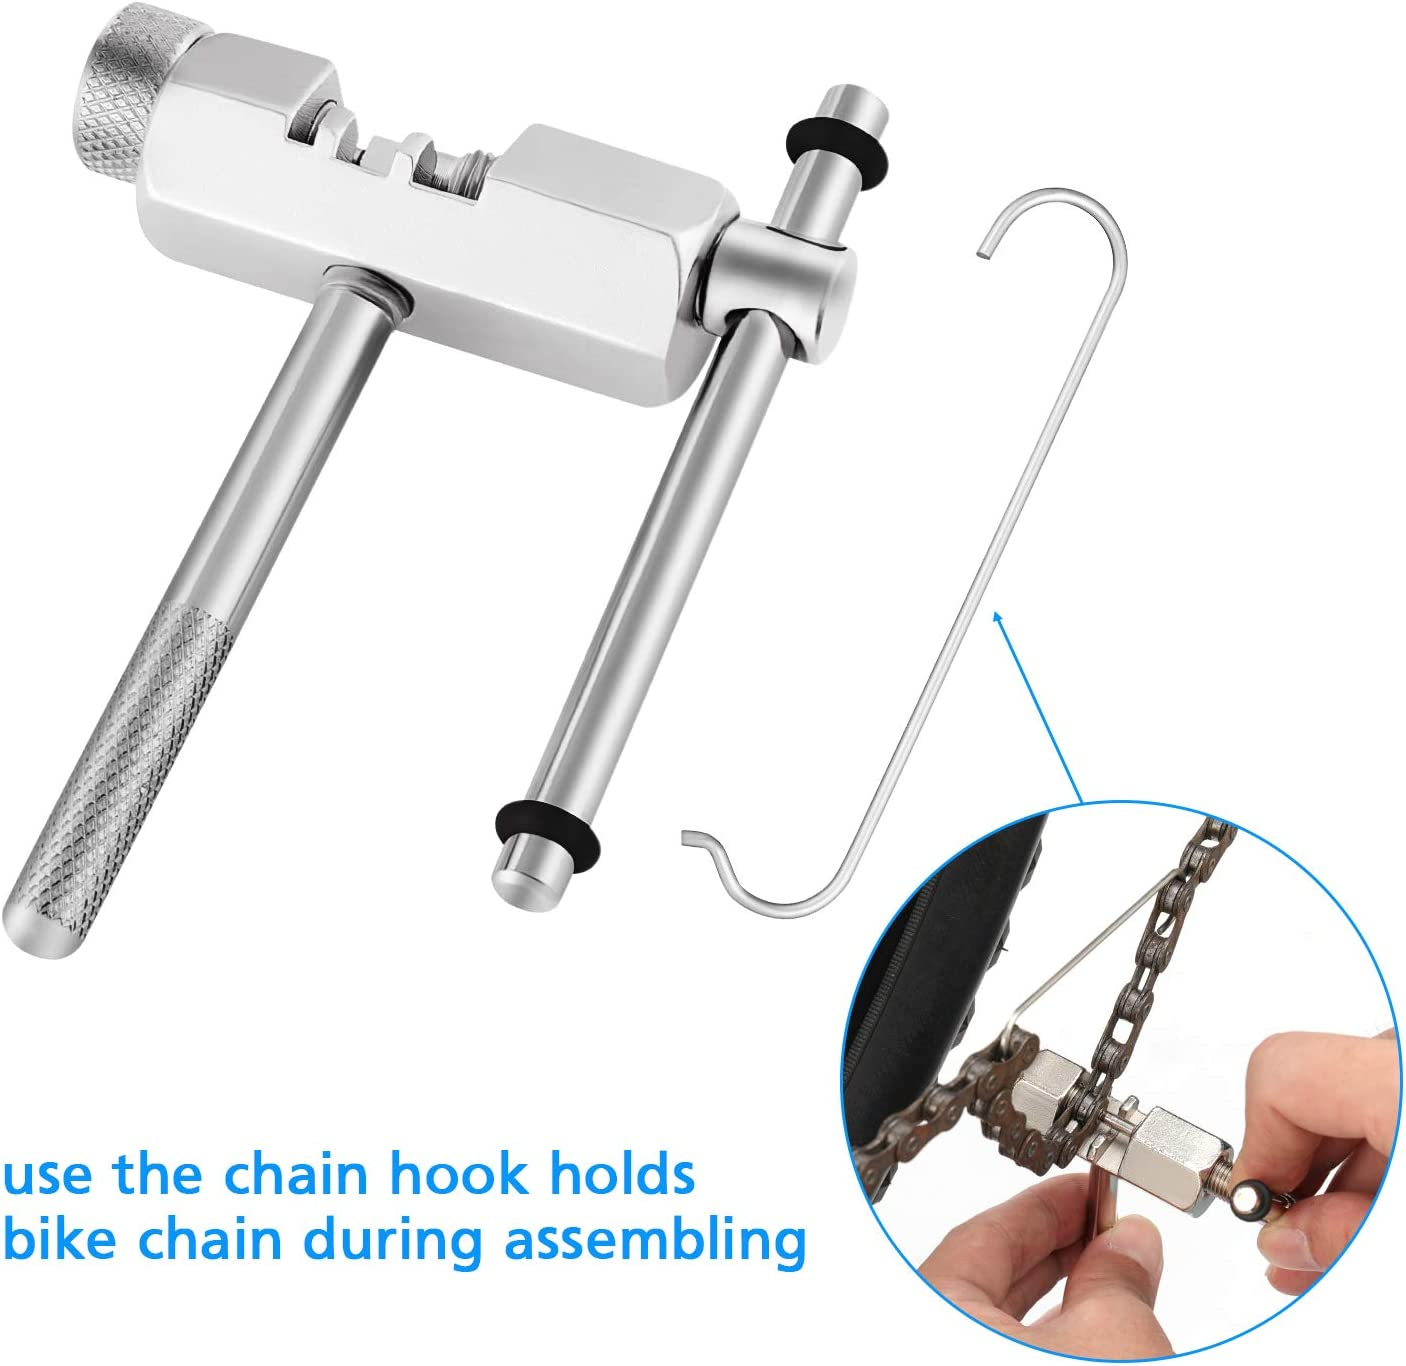 isinlive Multi-Function Bike Mechanic Repair Kit 8 Speed Chain Chain Breaker and Chain Checker Include 2 Pairs Bicycle Missing Link for 6 Reusable 7